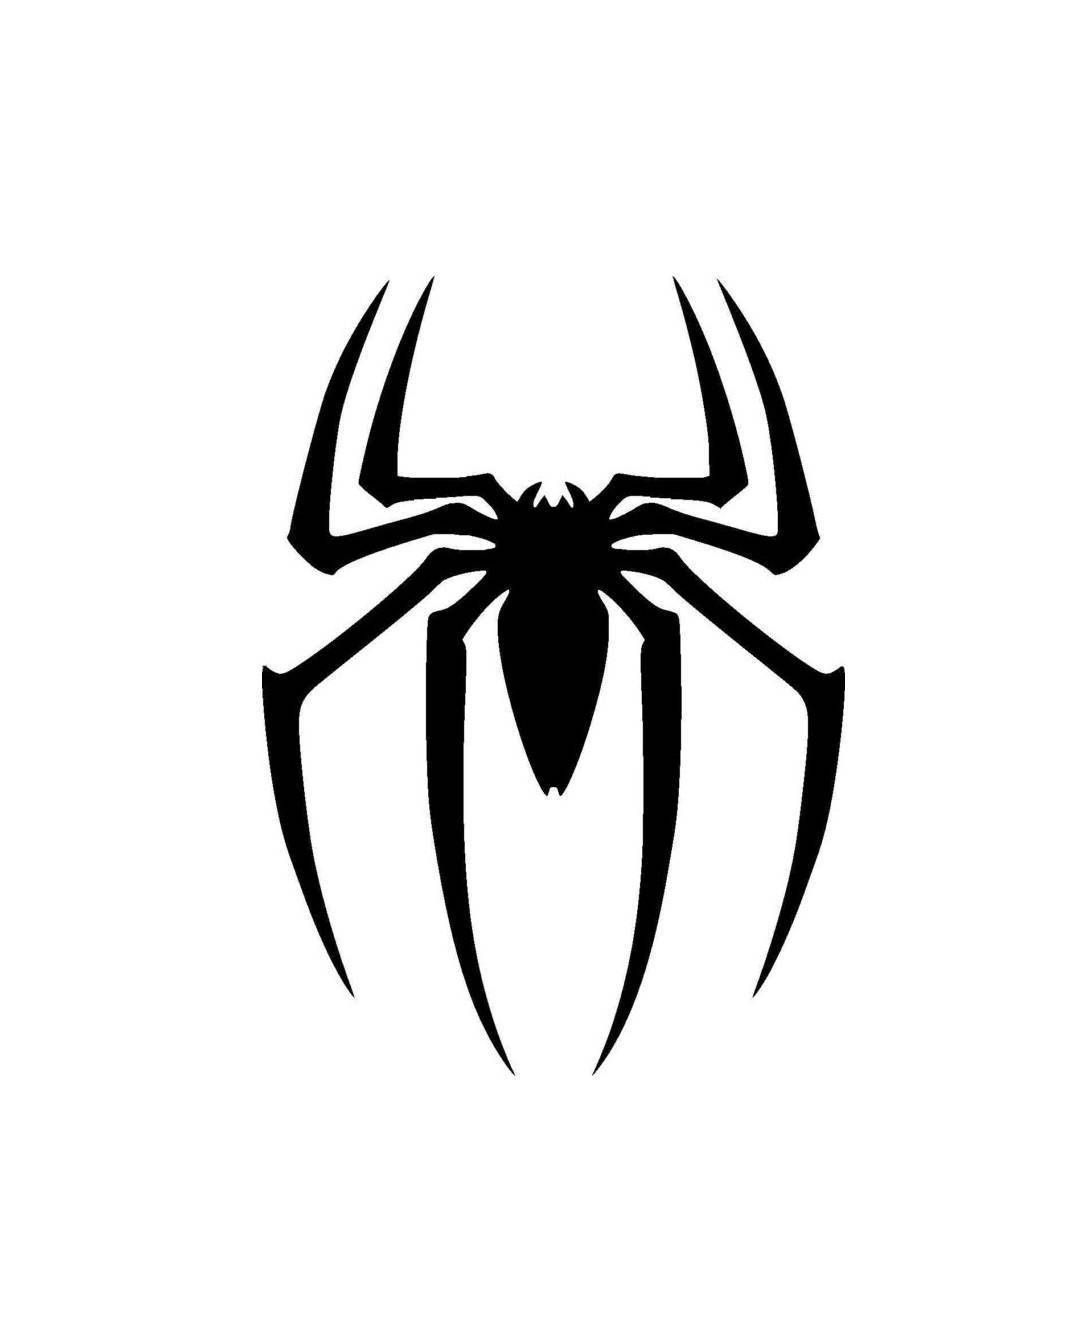 Spiderman Logo Silhouette Vinyl Decal Sticker